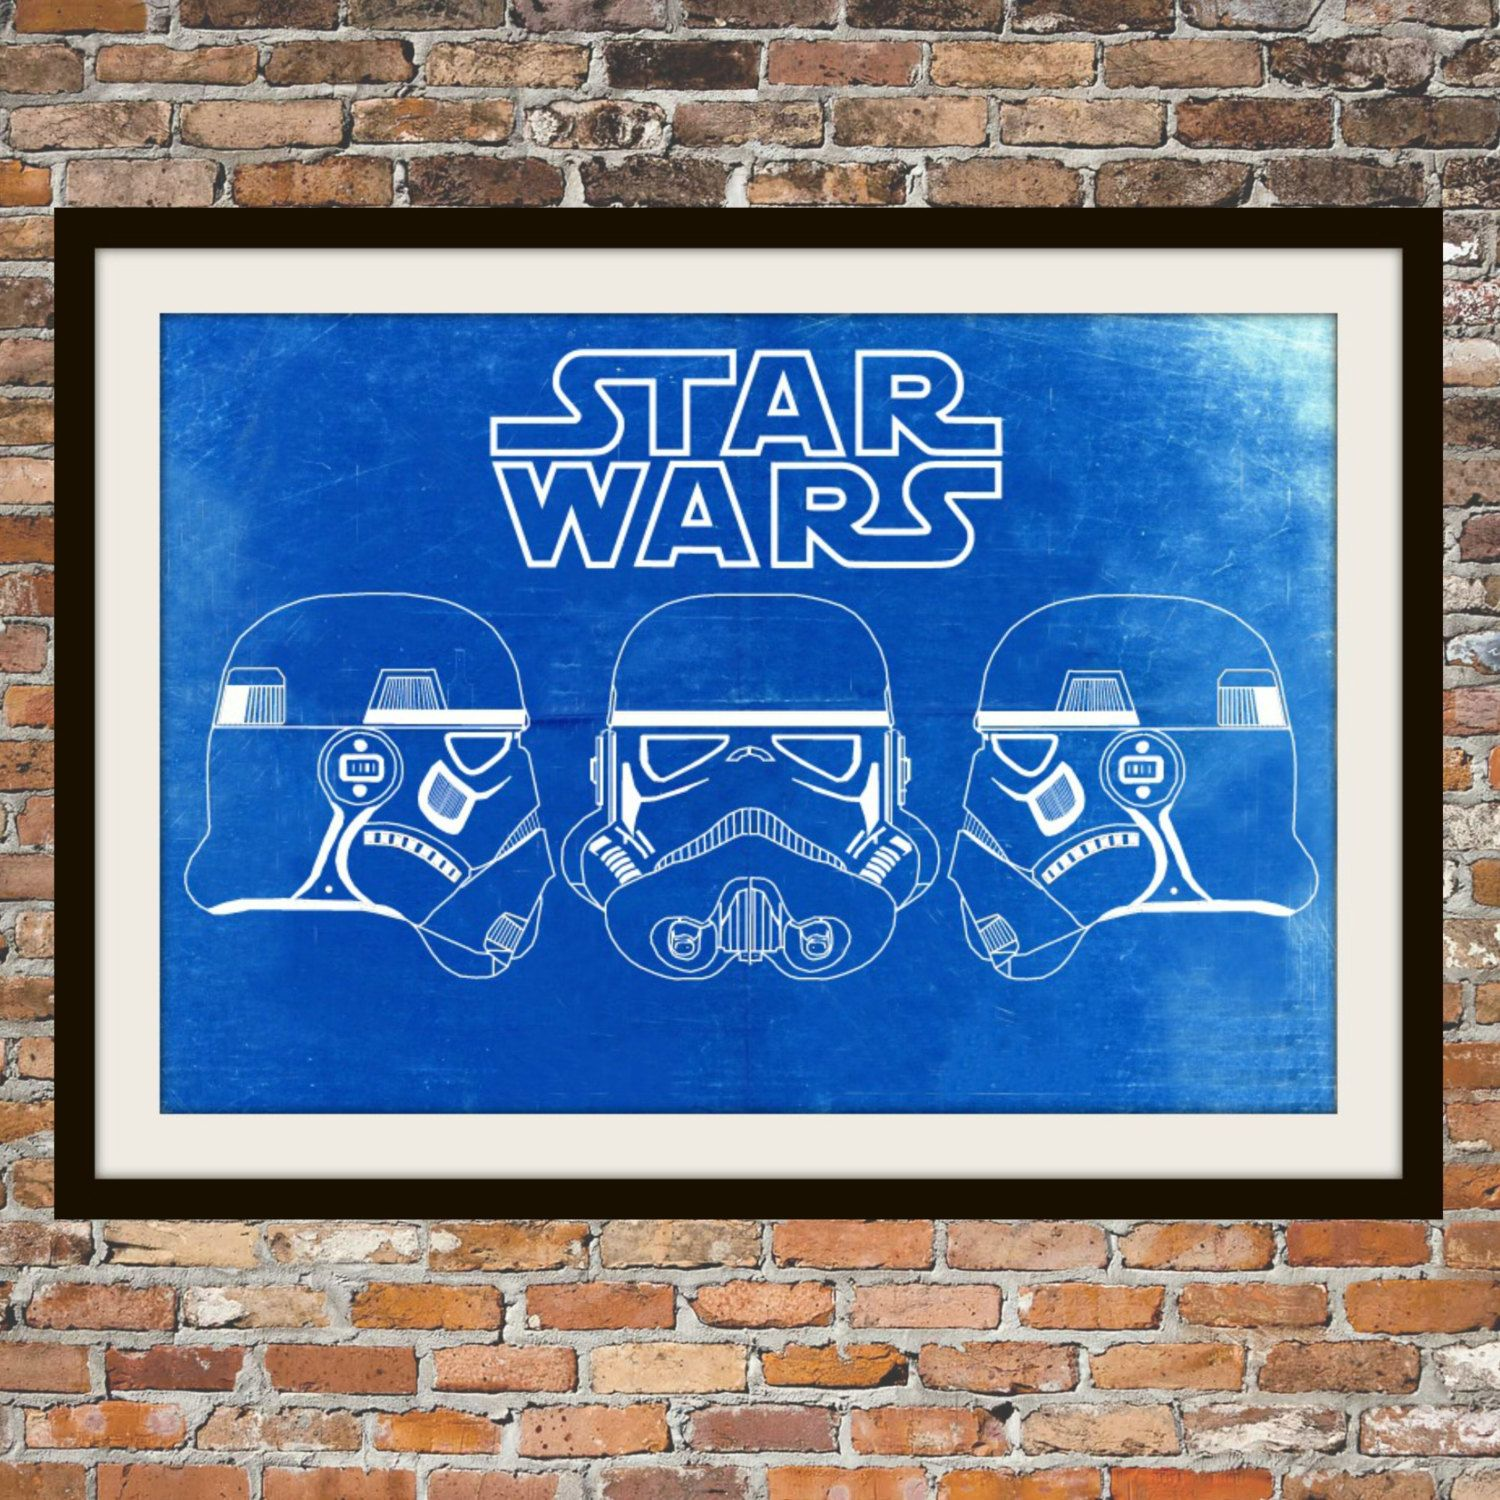 Star wars stormtrooper blueprint art of stormtrooper 3 views star wars stormtrooper blueprint art of stormtrooper 3 views technical drawings engineering drawings patent blue malvernweather Choice Image